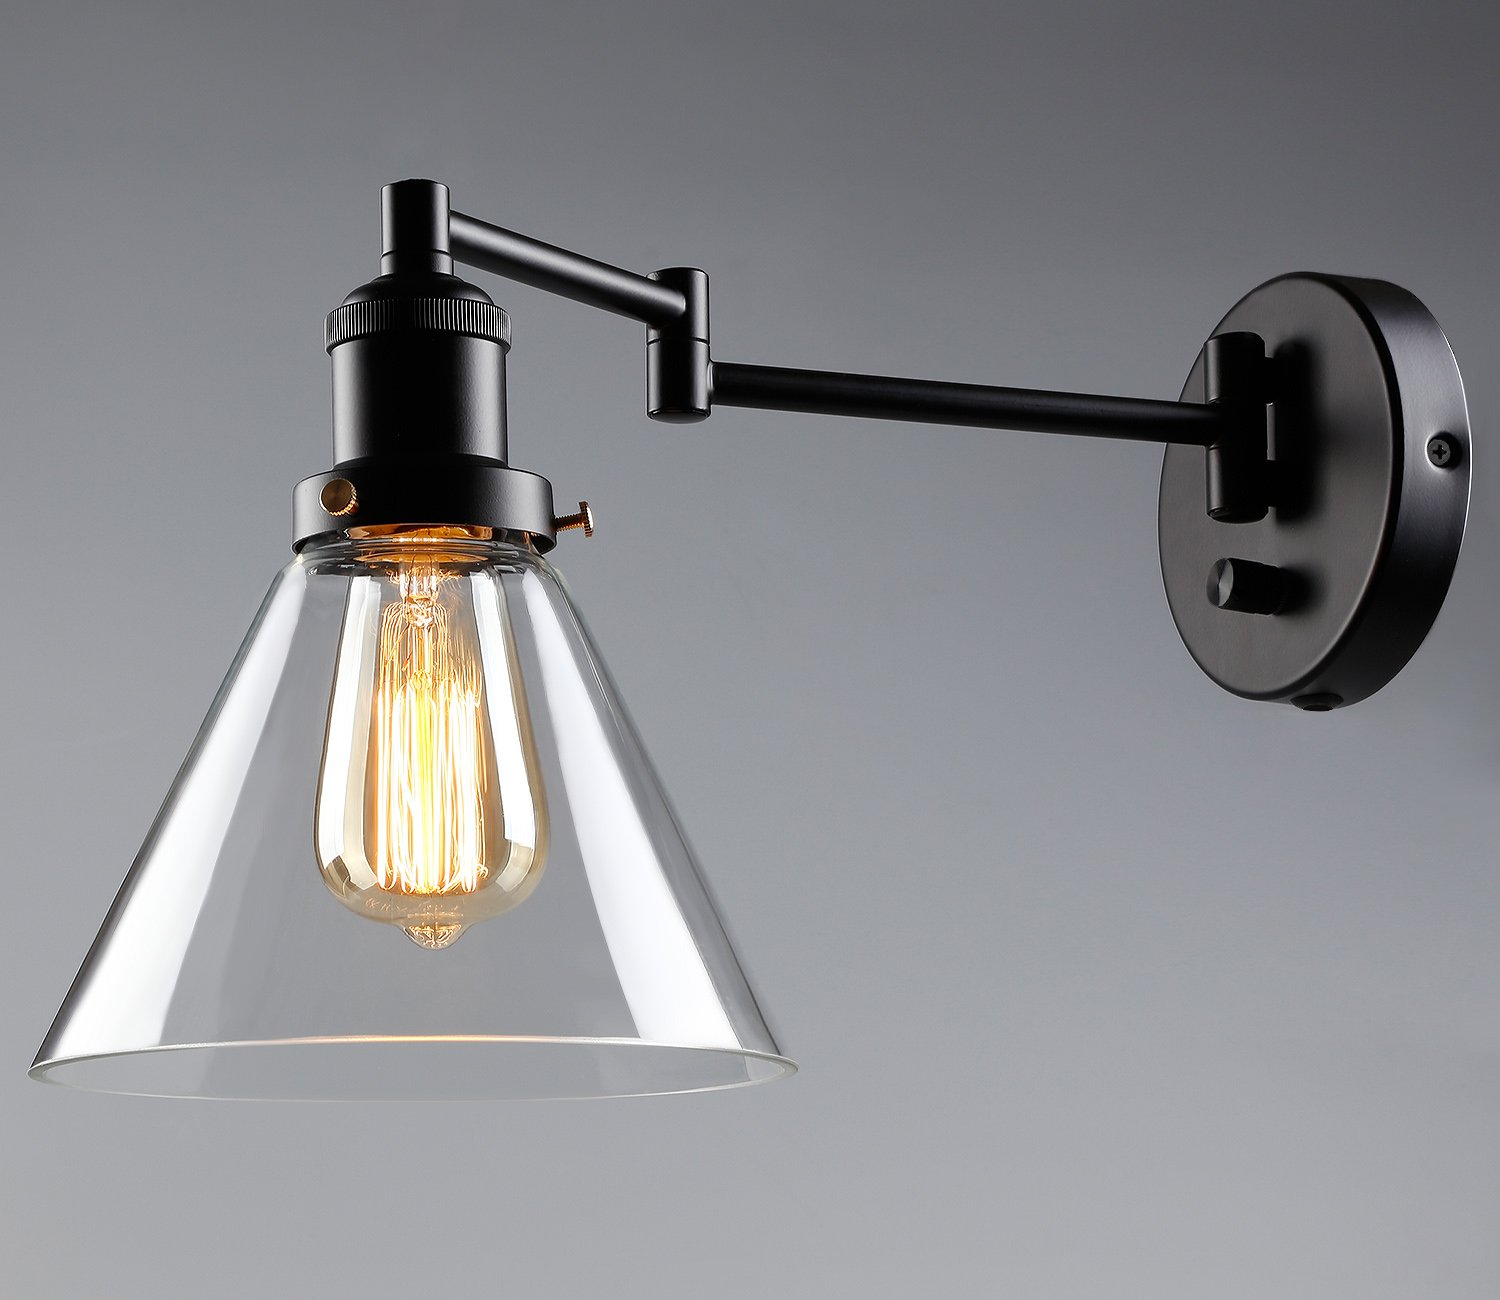 1 Light Industrial Glass Wall Sconce Edison Vintage Style Clear Lamp Wiring Diagram Transparent Lampshade Plug N Play Hardwire Lobby Hallway Kitchen Dining Room